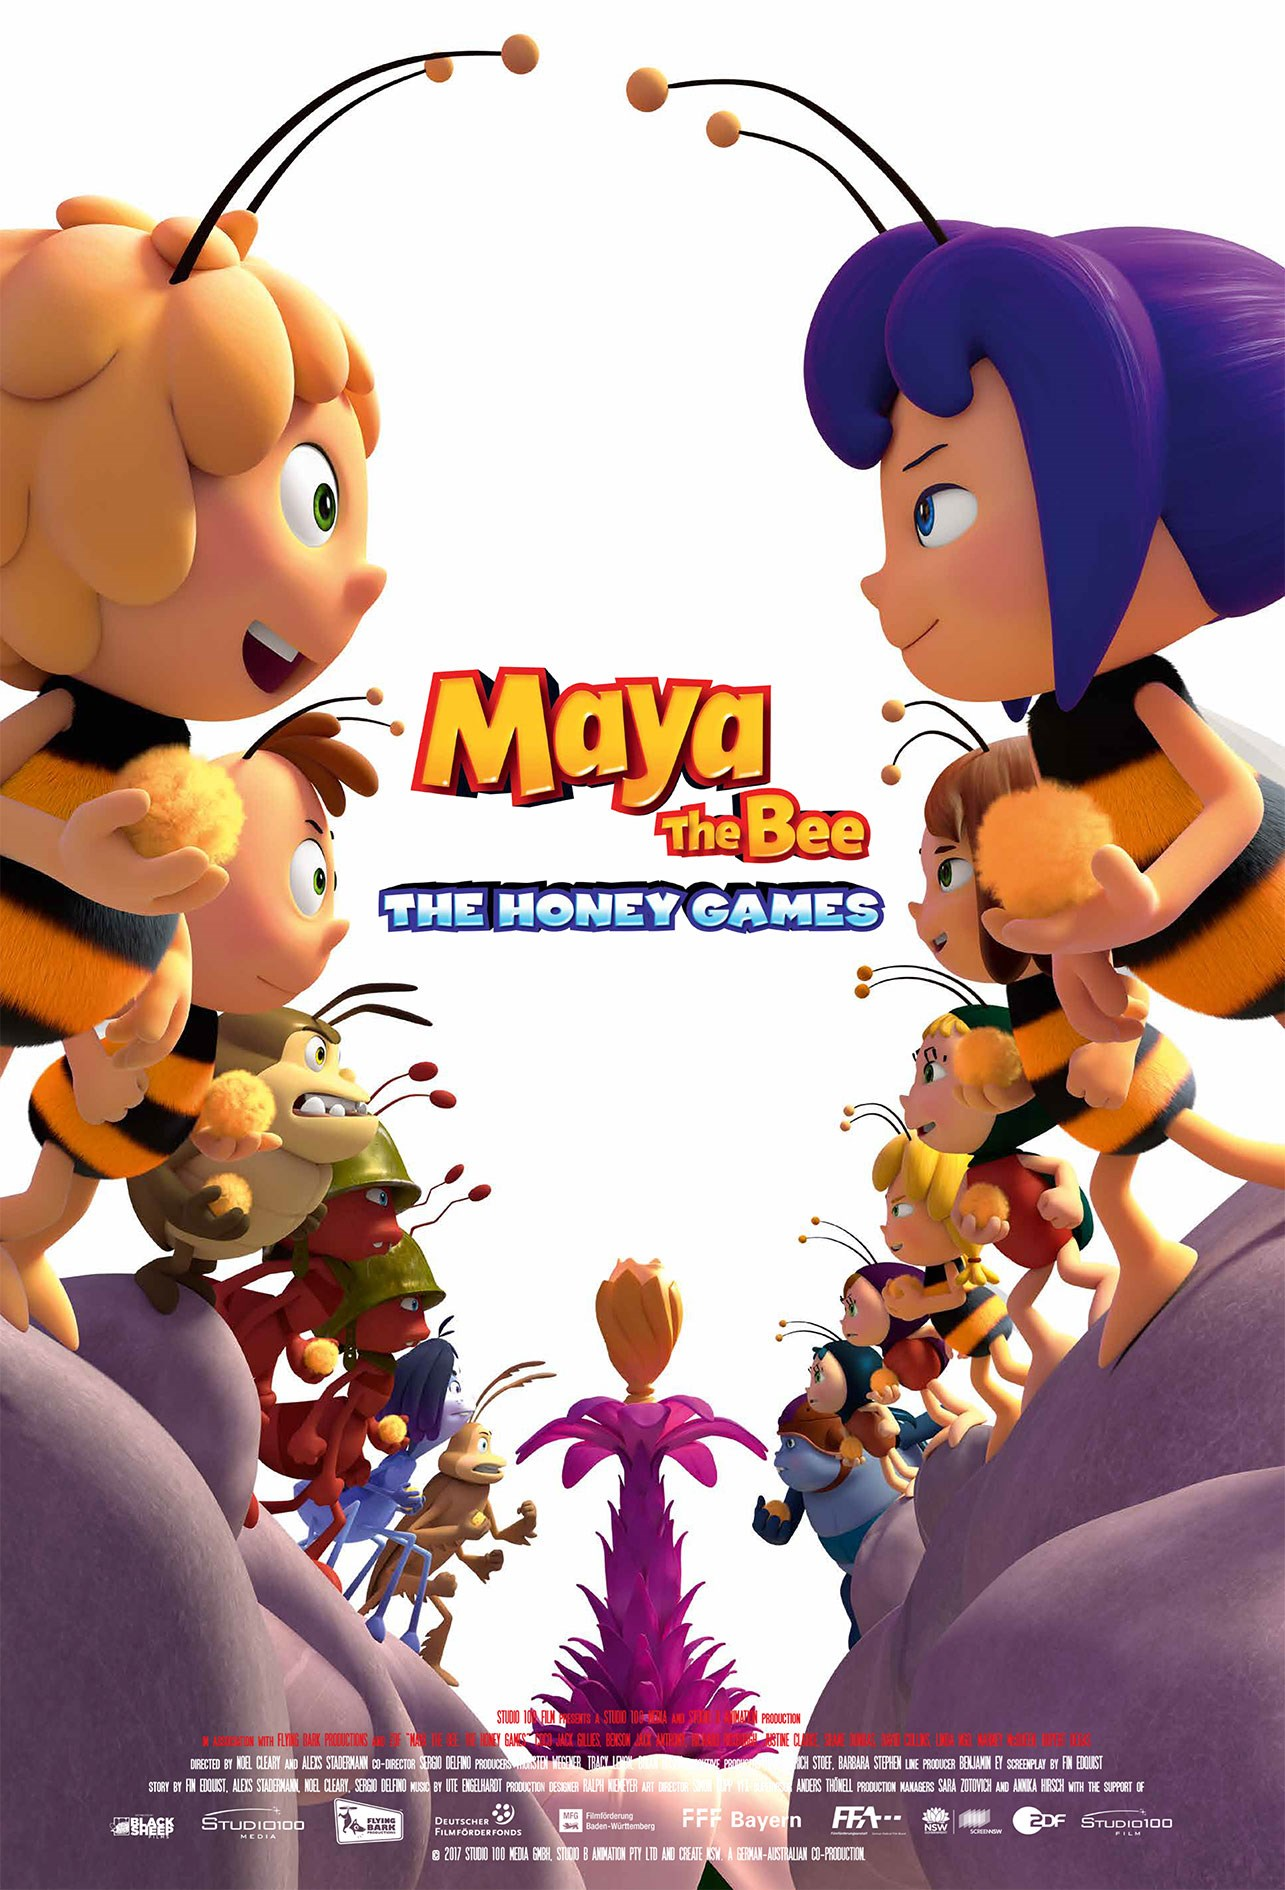 MAYA THE BEE  - THE HONEY GAMES now showing at Cavendish Square